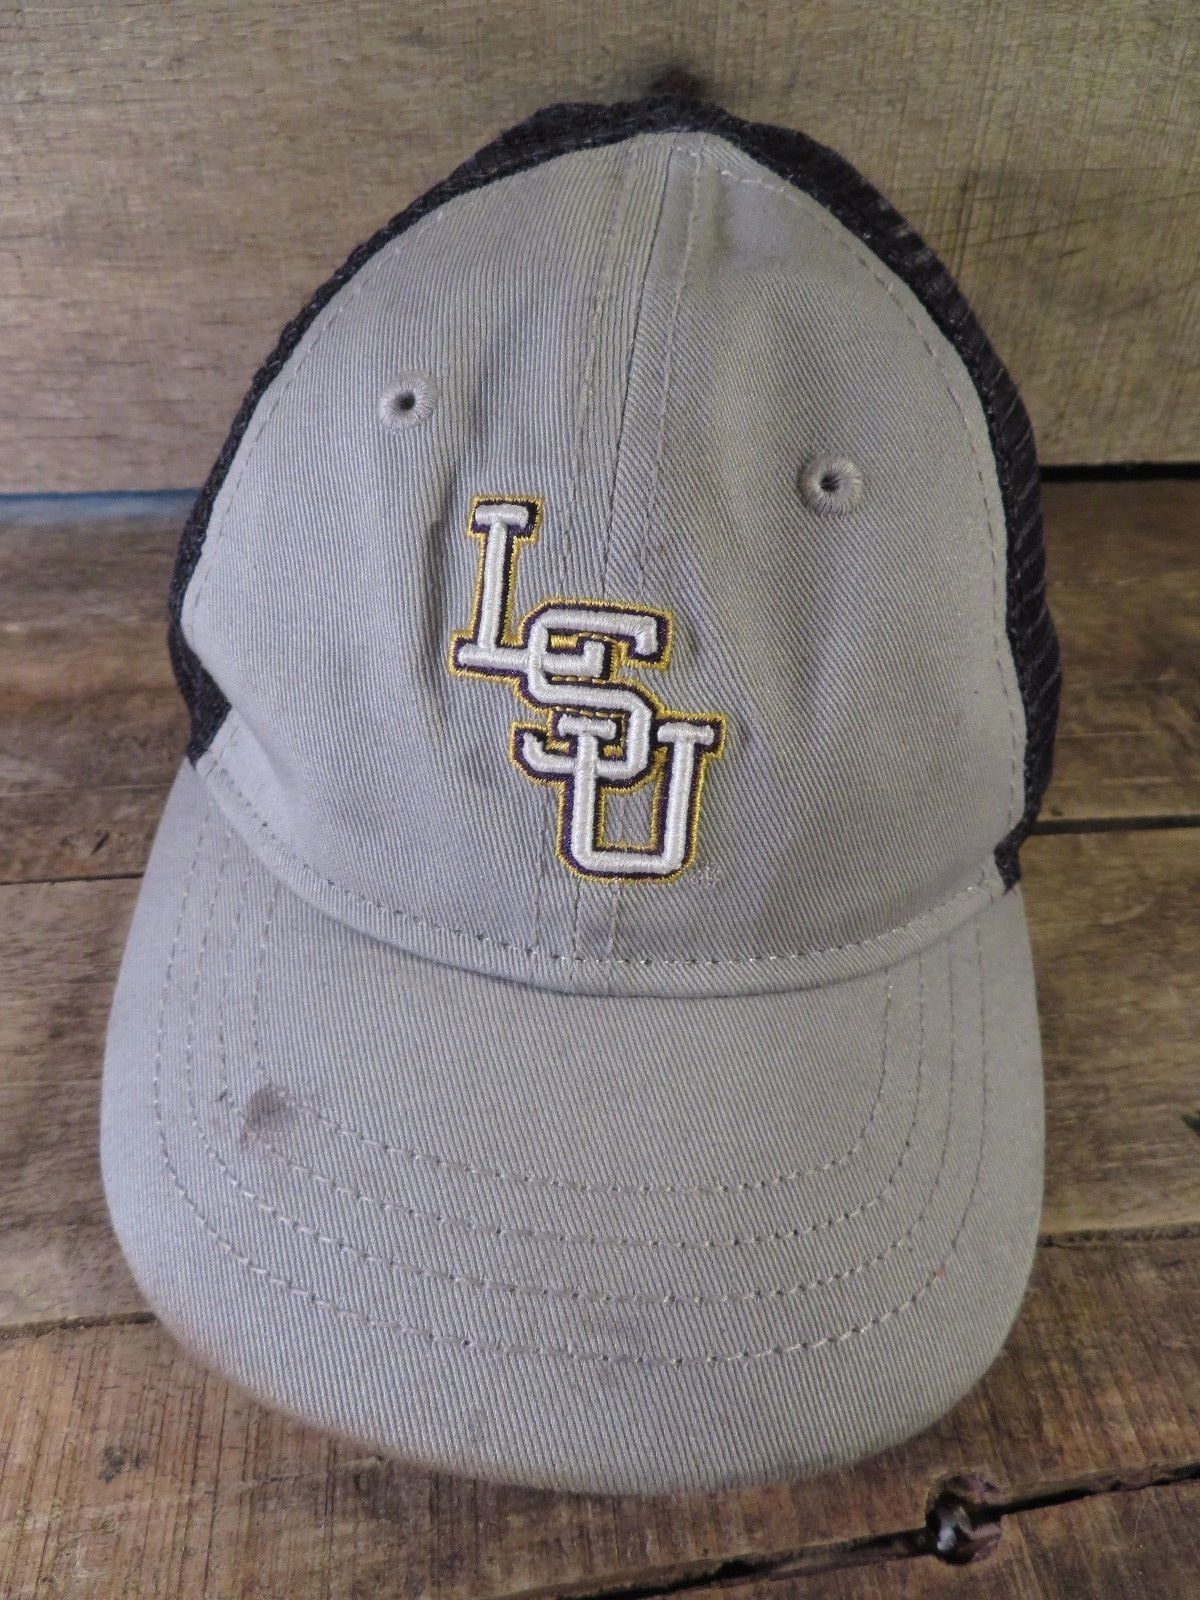 LSU Louisiana State University New Era Infant Toddler Cap Hat image 1